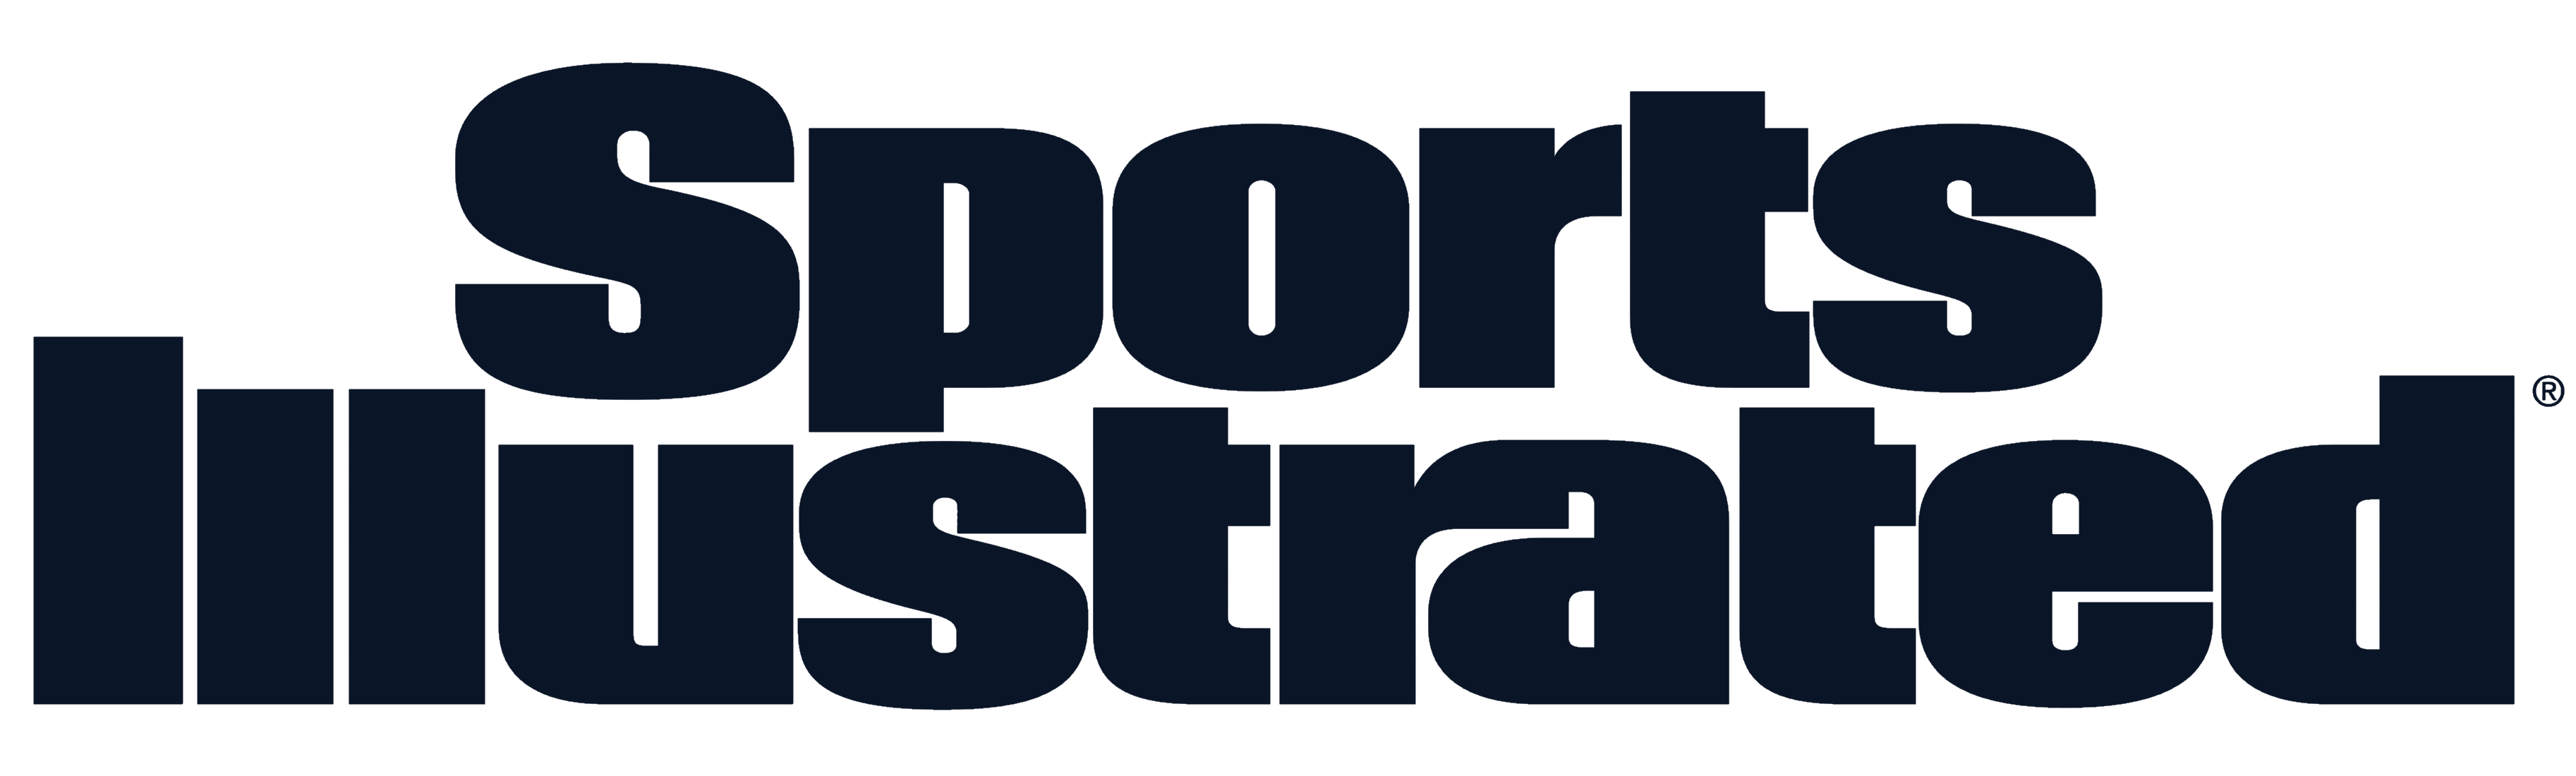 Sports_Illustrated_logo